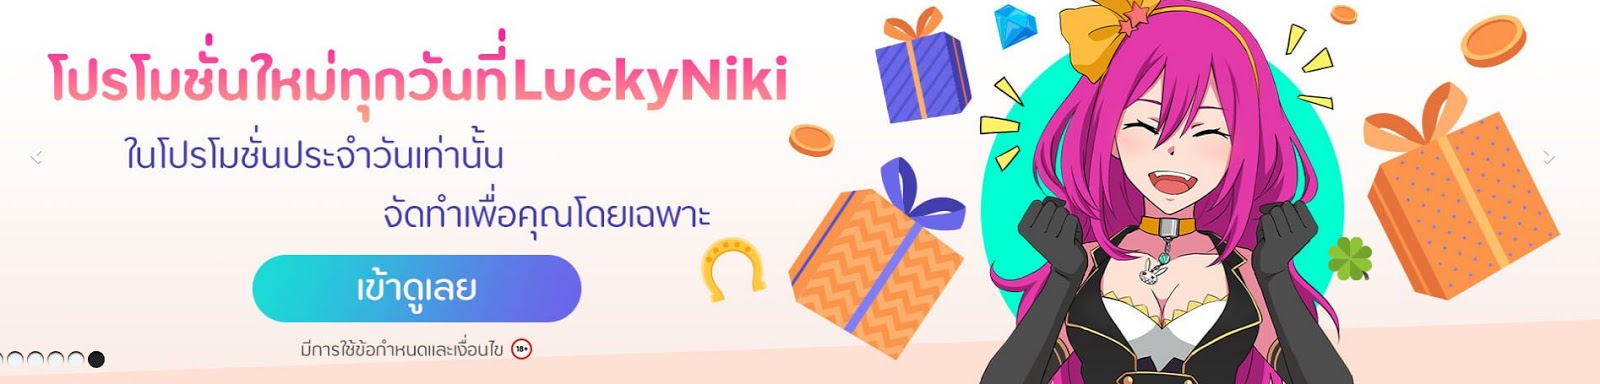 LUCKY-Niki casinointhailand sbobet ผล บอล